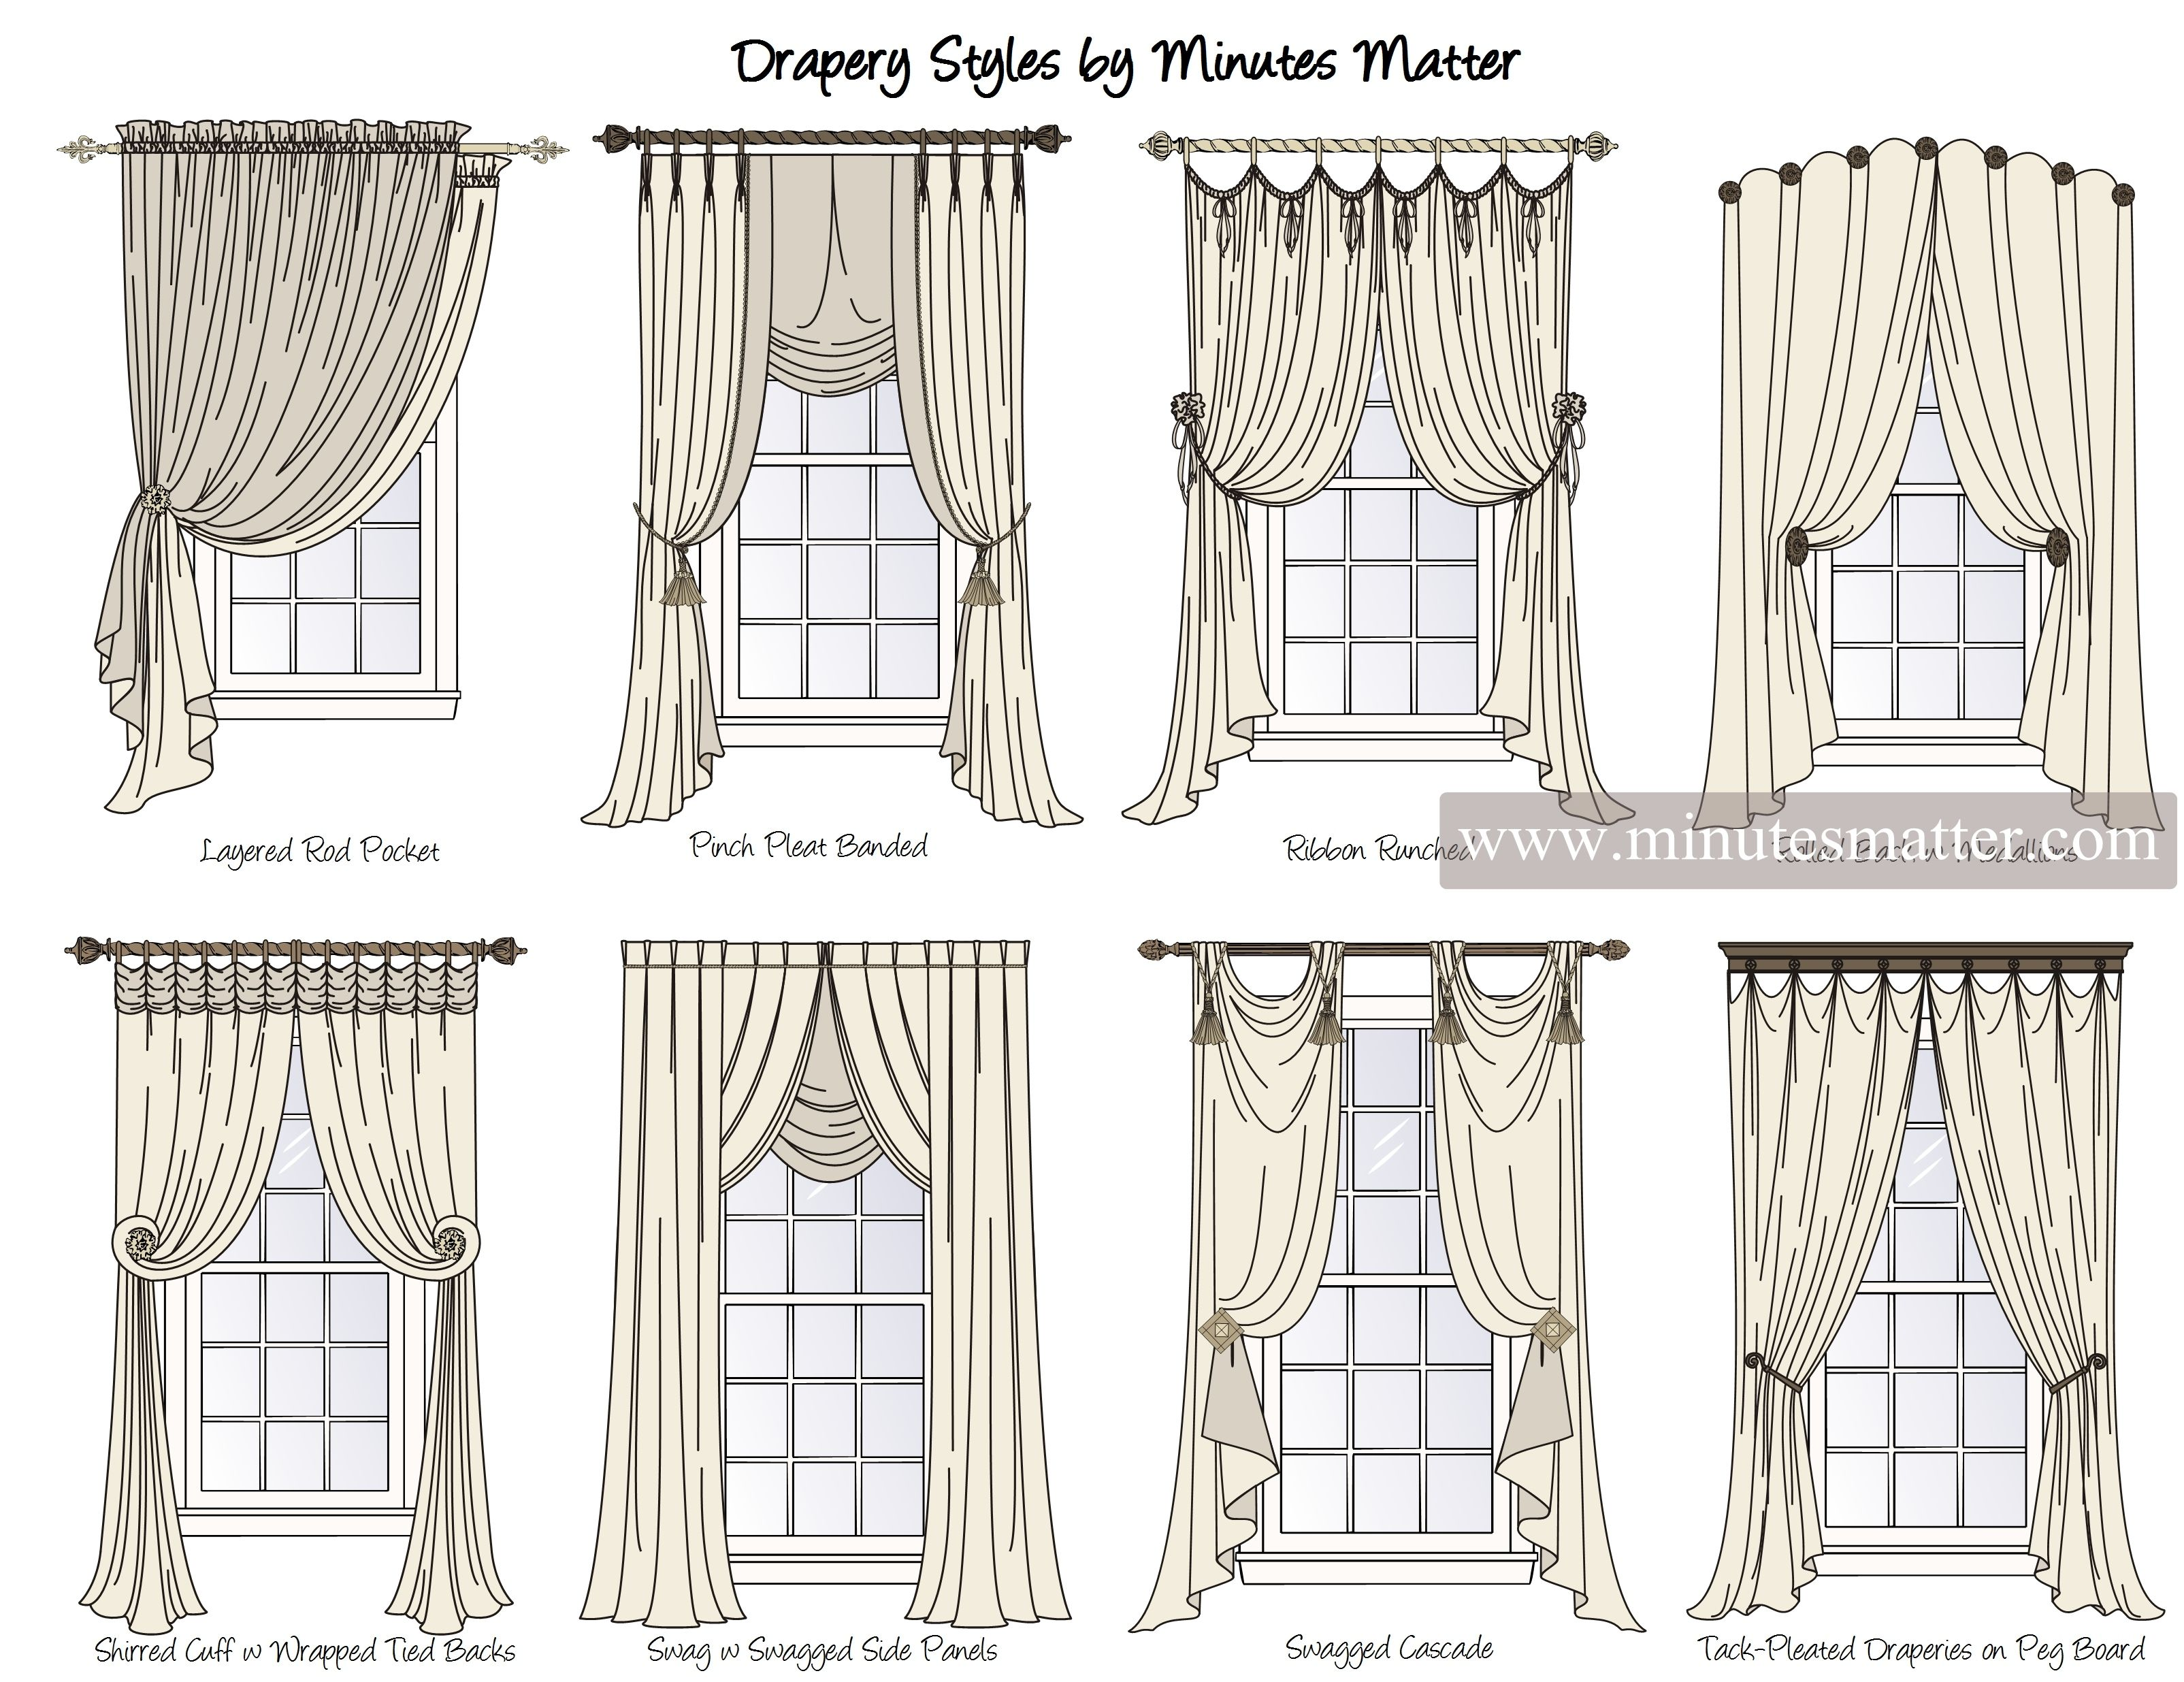 Drapery Style Images From Minutes Matter Studio Graphic Software